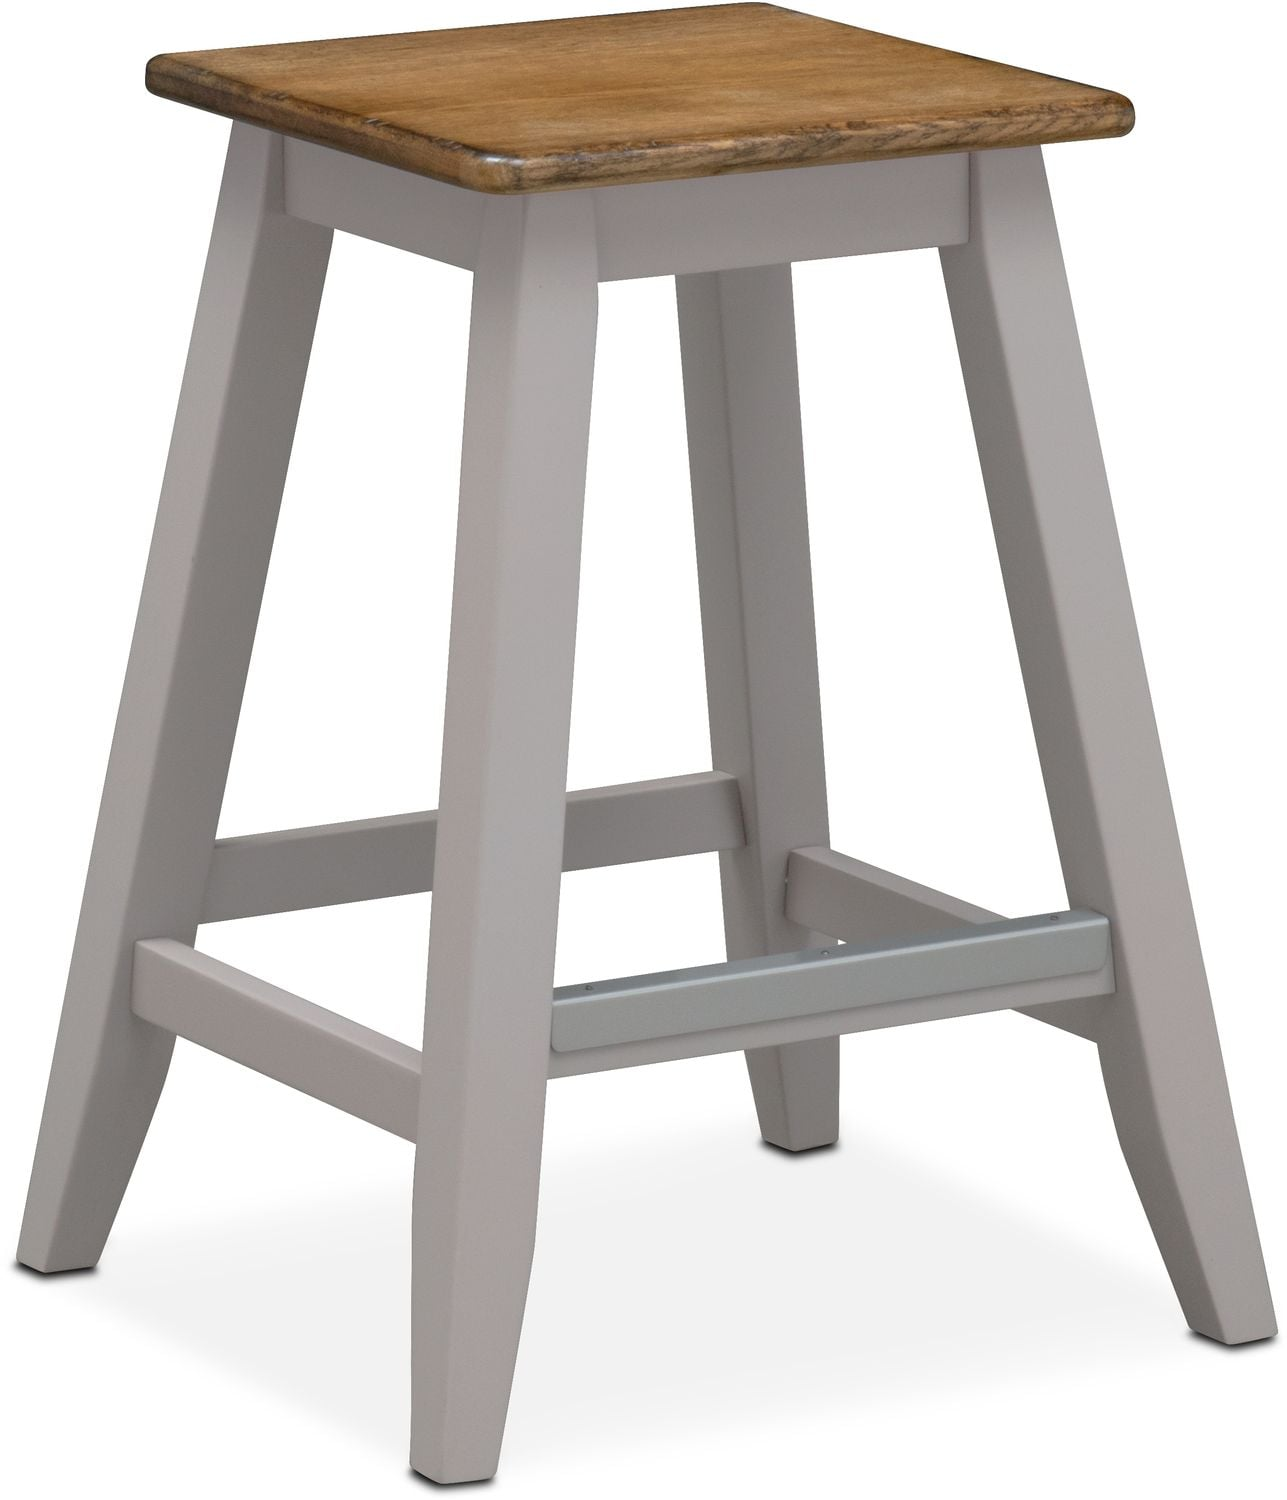 Nantucket Counter-Height Stool - Oak and Gray | Value City Furniture